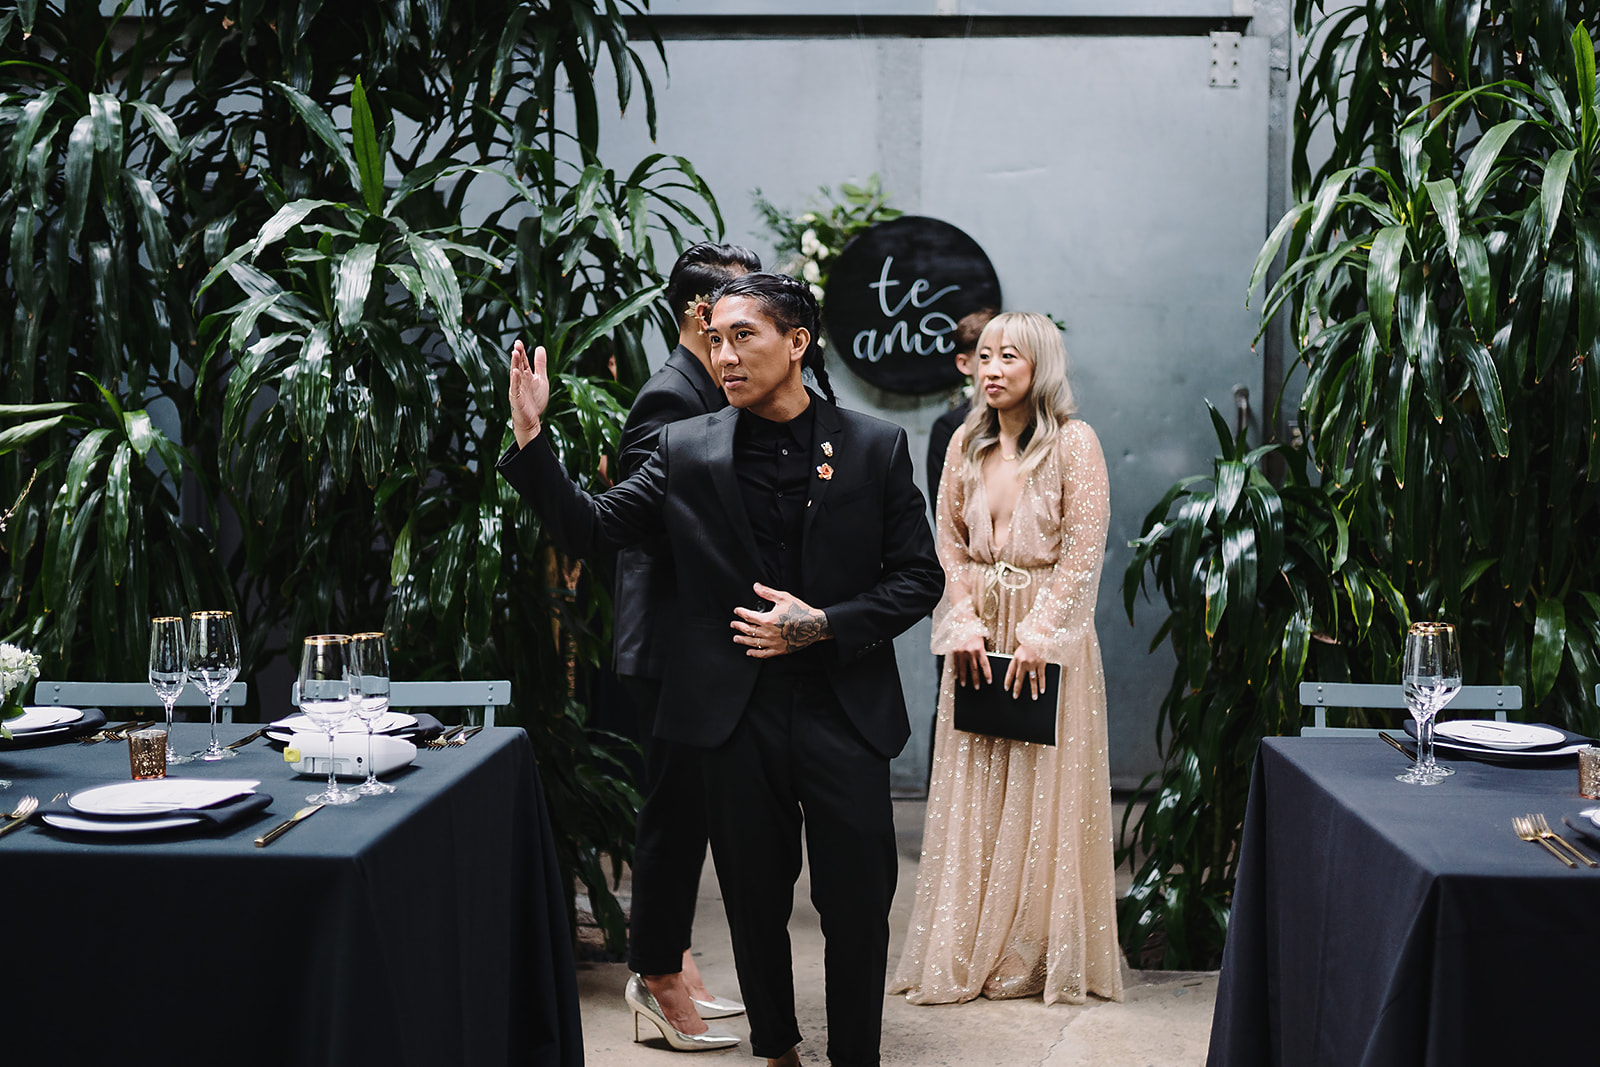 Wedding Photography at Millwick Los Angeles